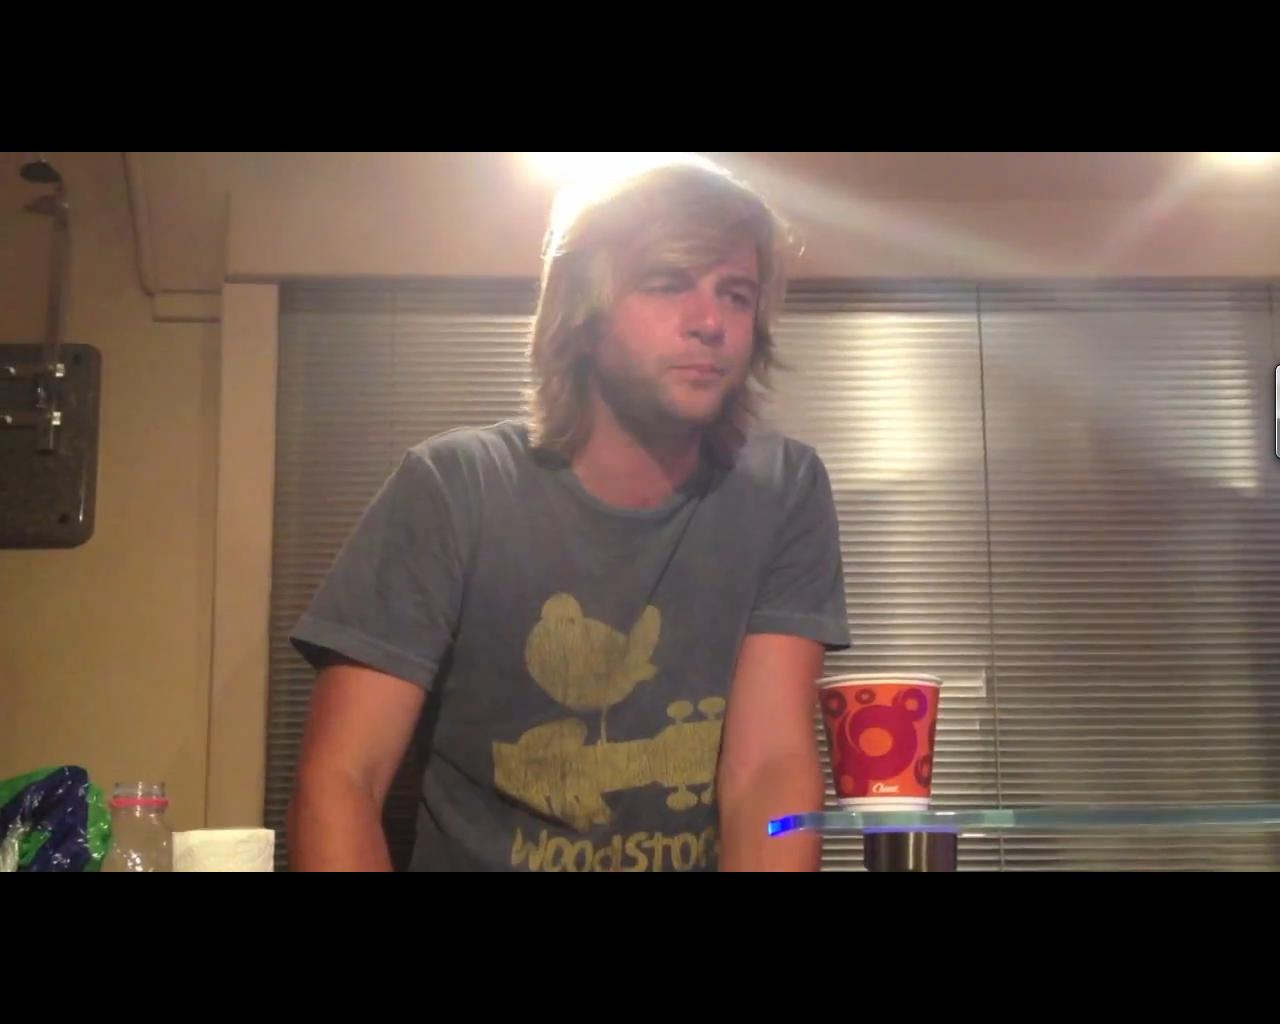 Screen trofeos from Keith's youtube video of him eating a sandwich.